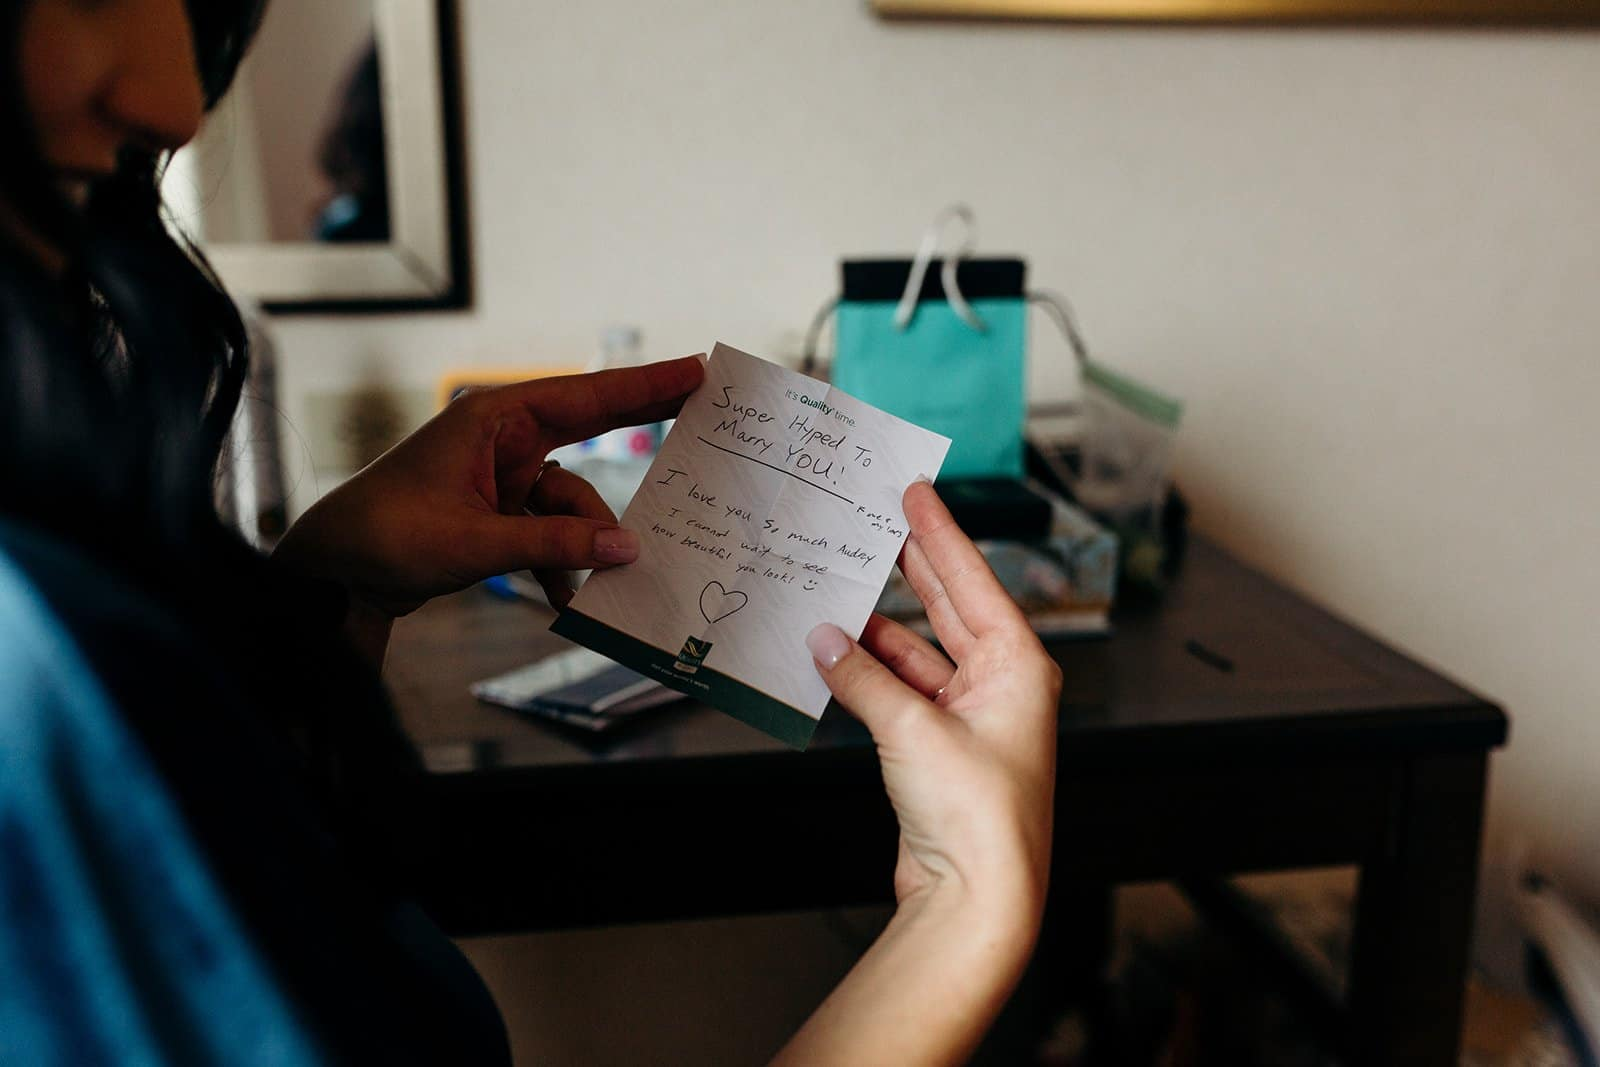 Bride reading hand written note from future husband